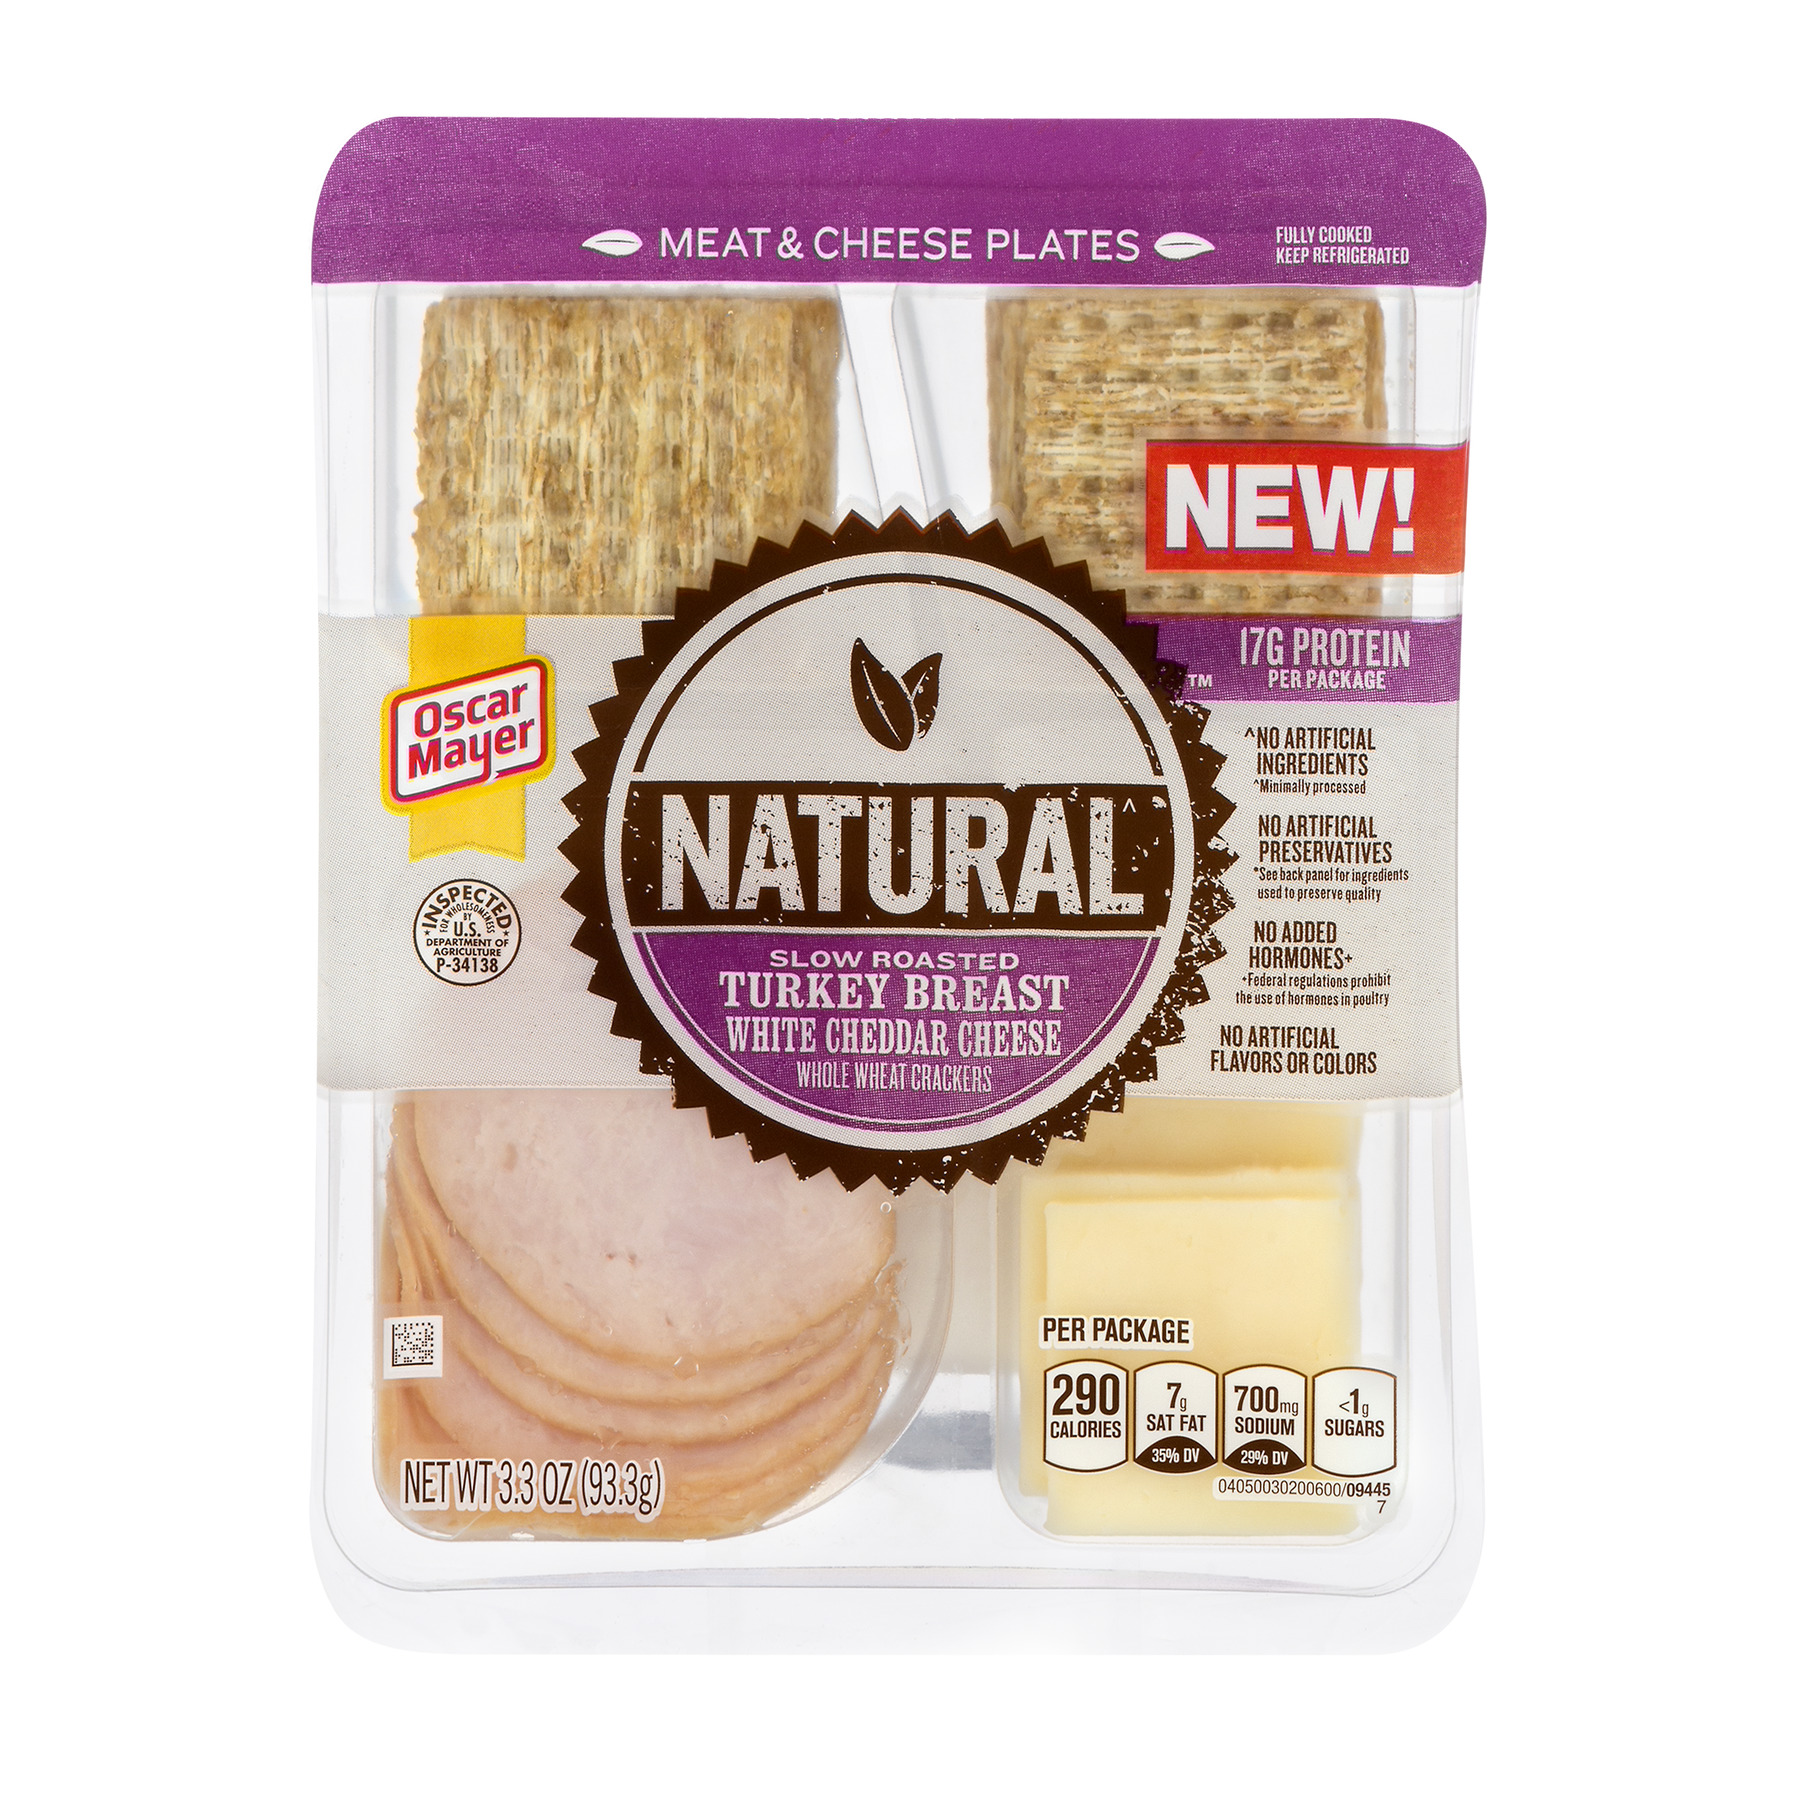 Oscar Mayer Natural Slow Roasted Turkey Breast, White Cheddar Cheese and Whole Wheat Crackers, 3.3 OZ